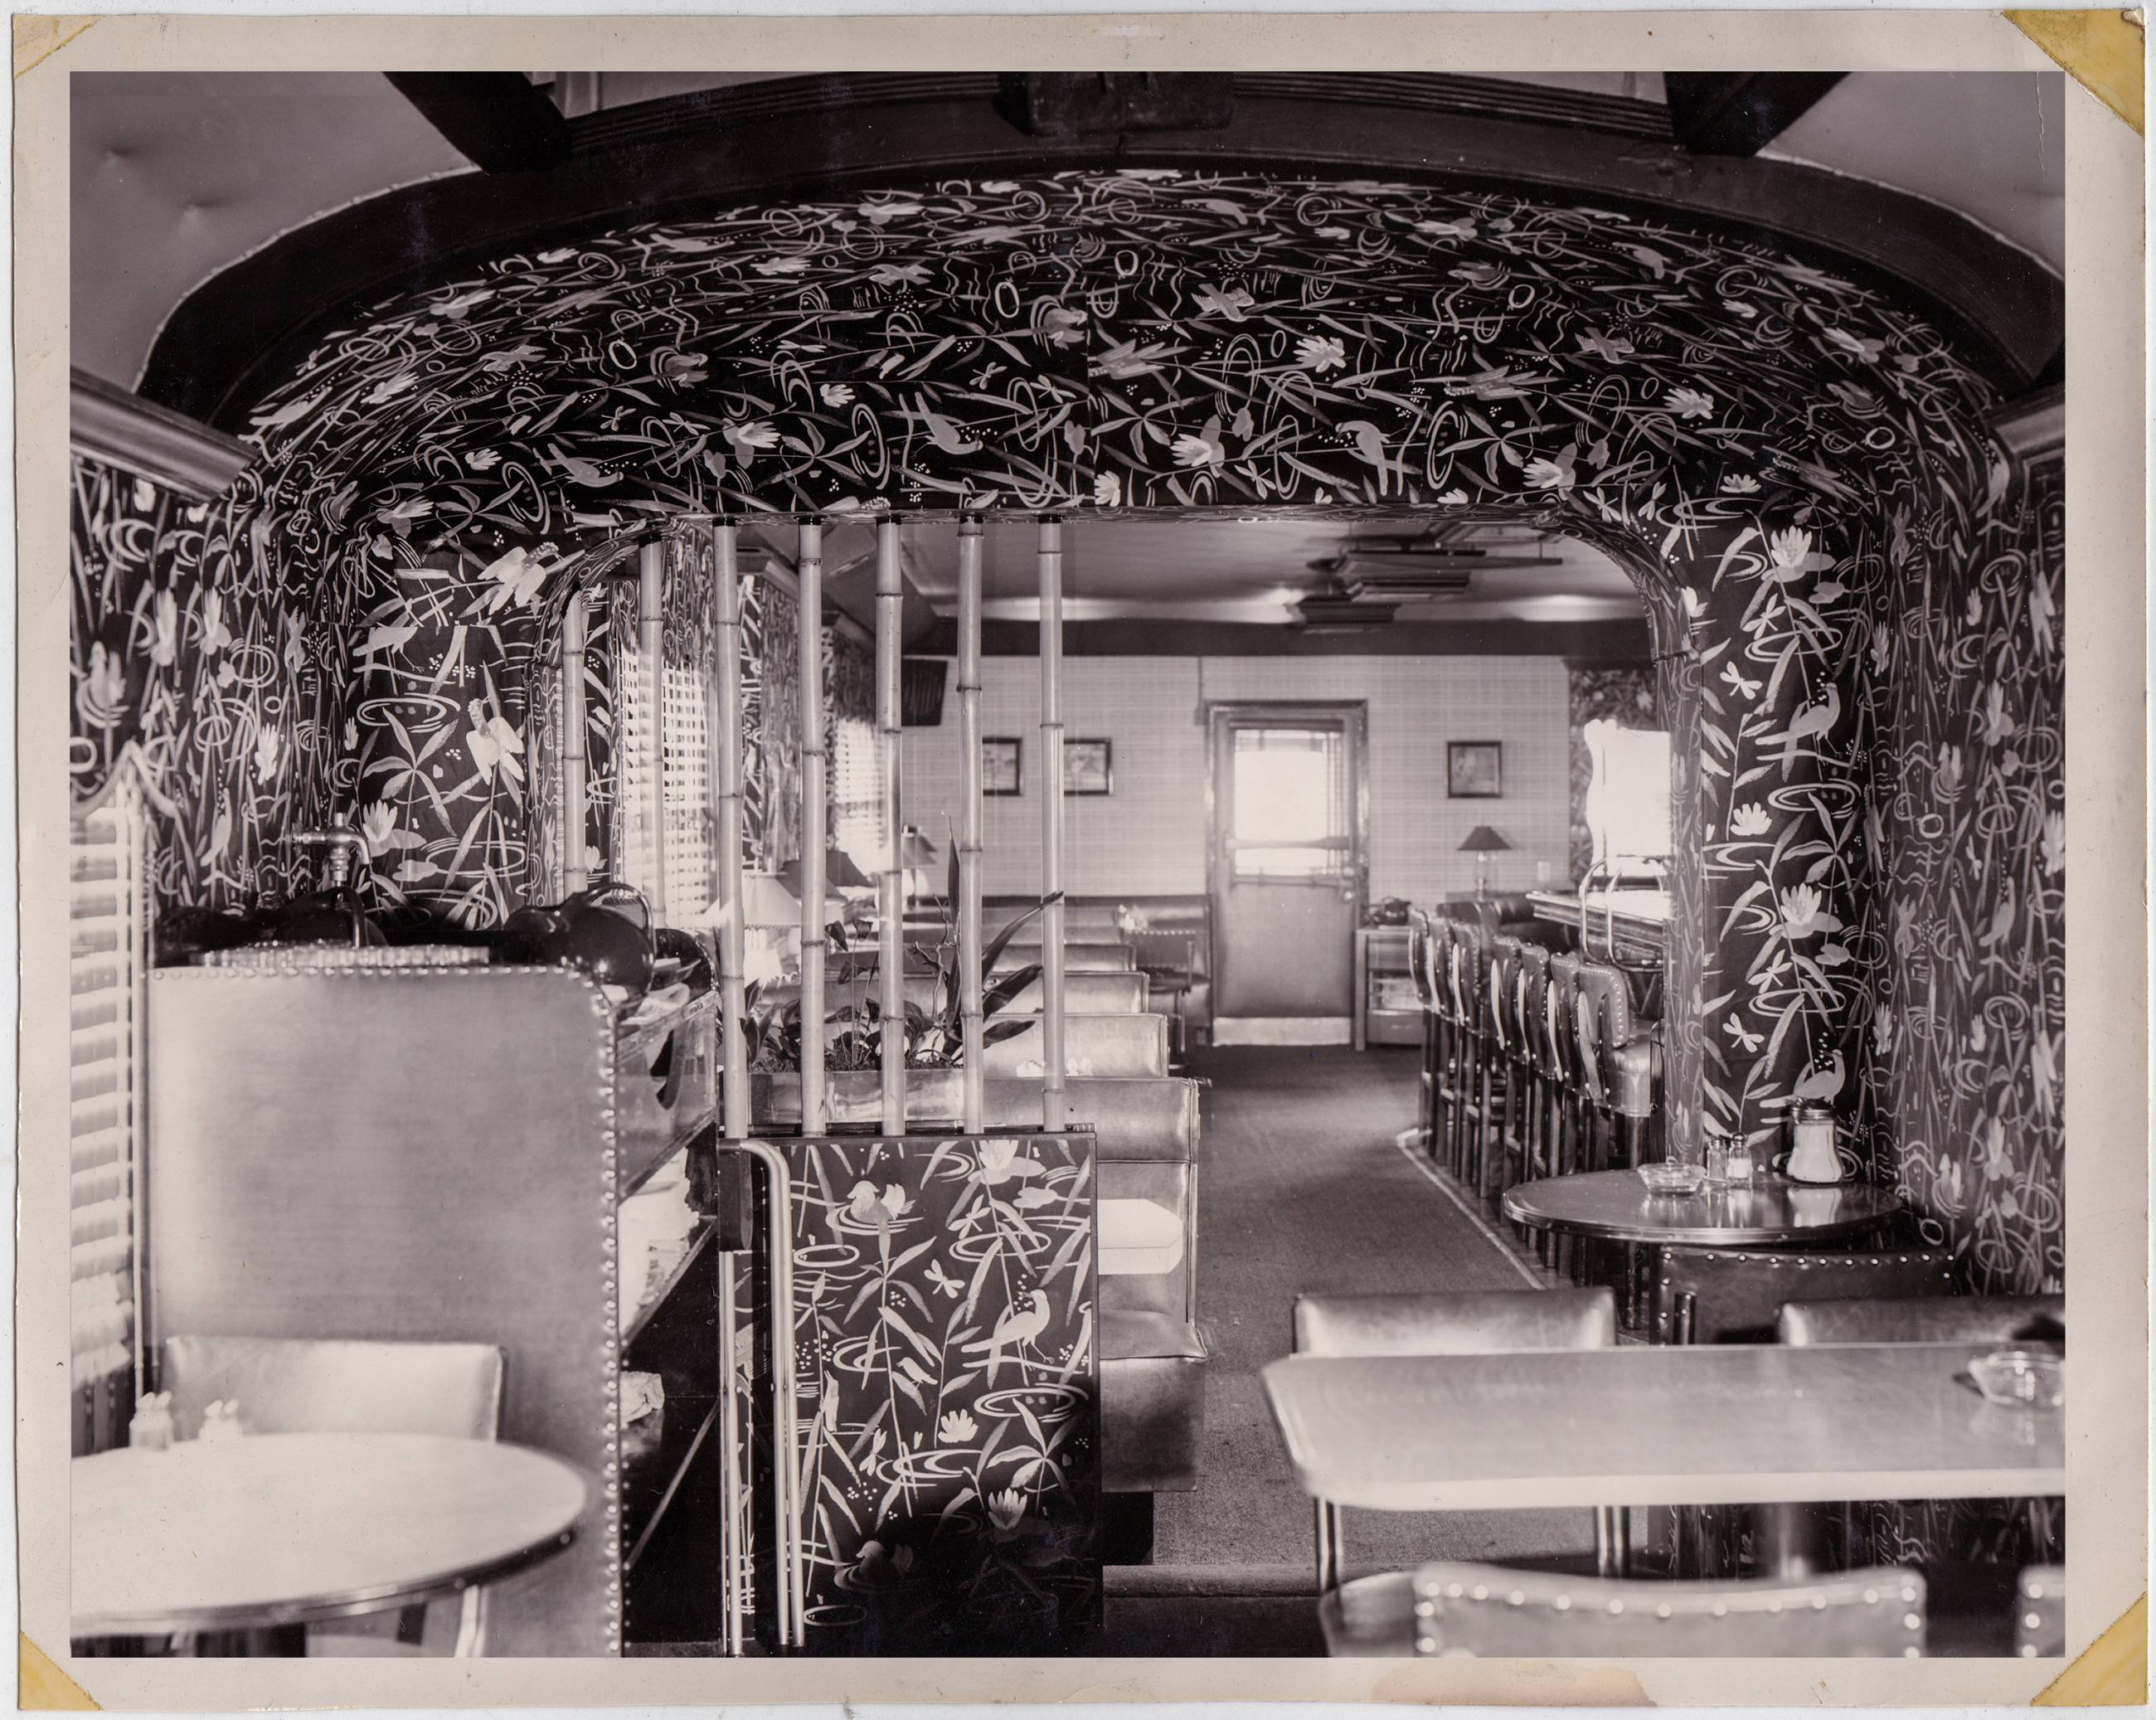 Vintage photo of the Formosa Cafe interior